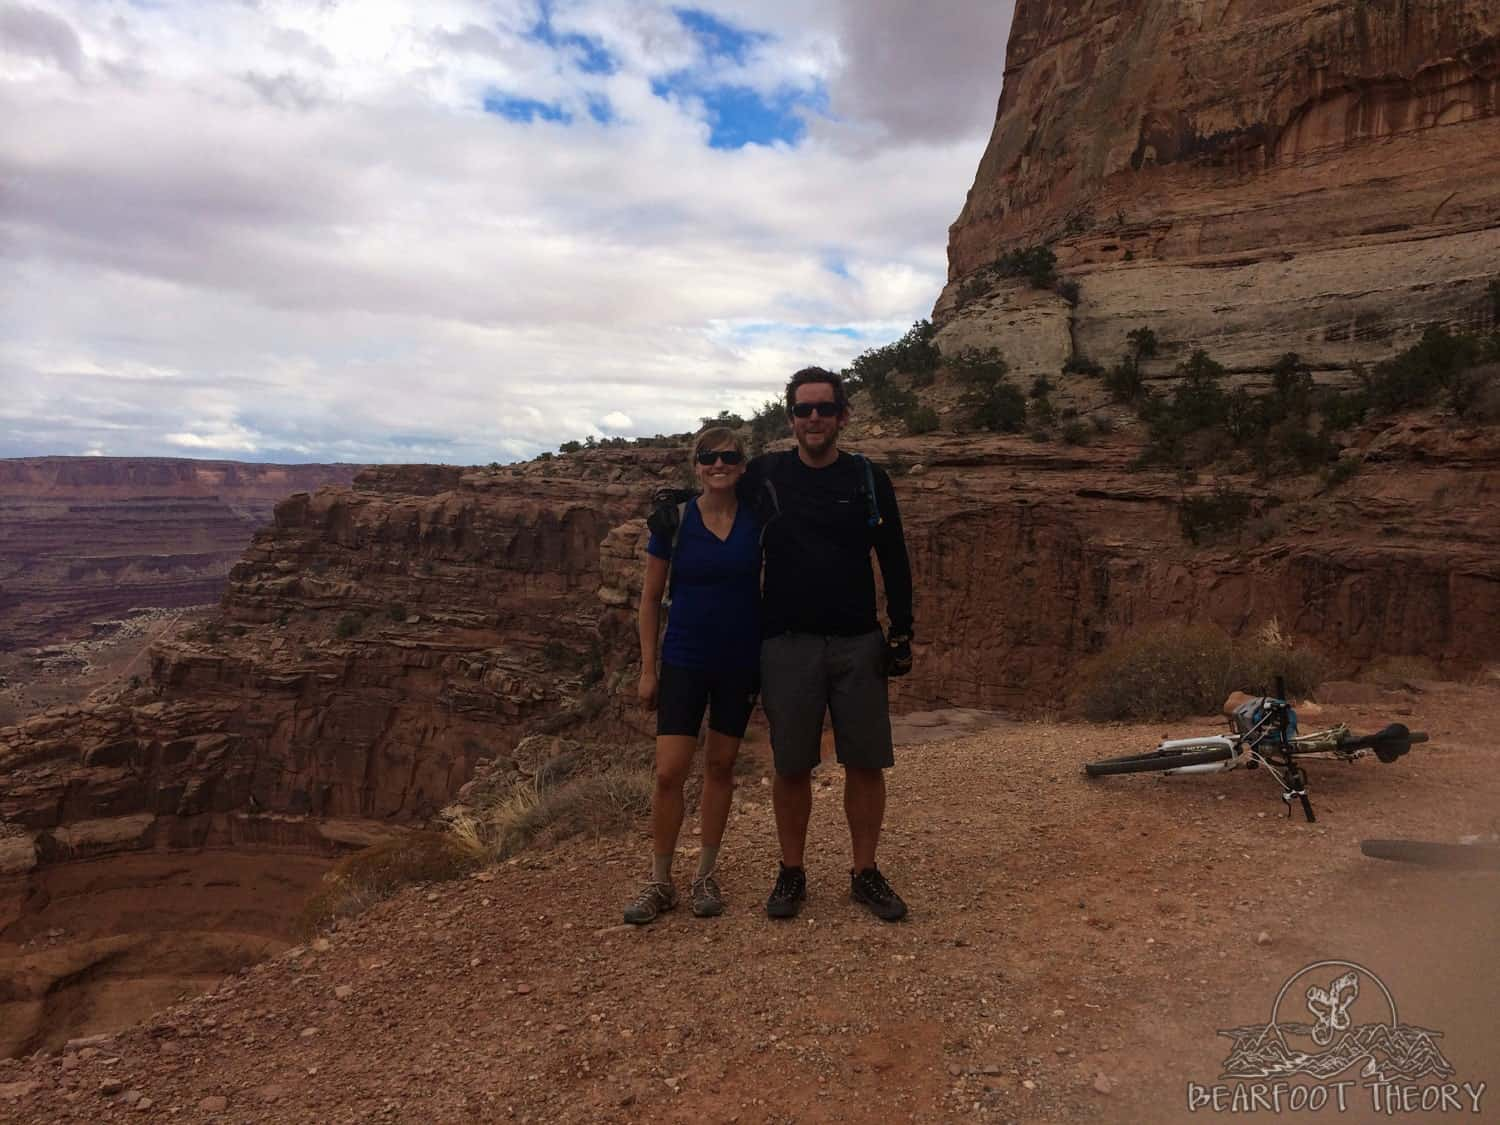 The climb up Shafer Hill on the White Rim Trail in Canyonlands National Park